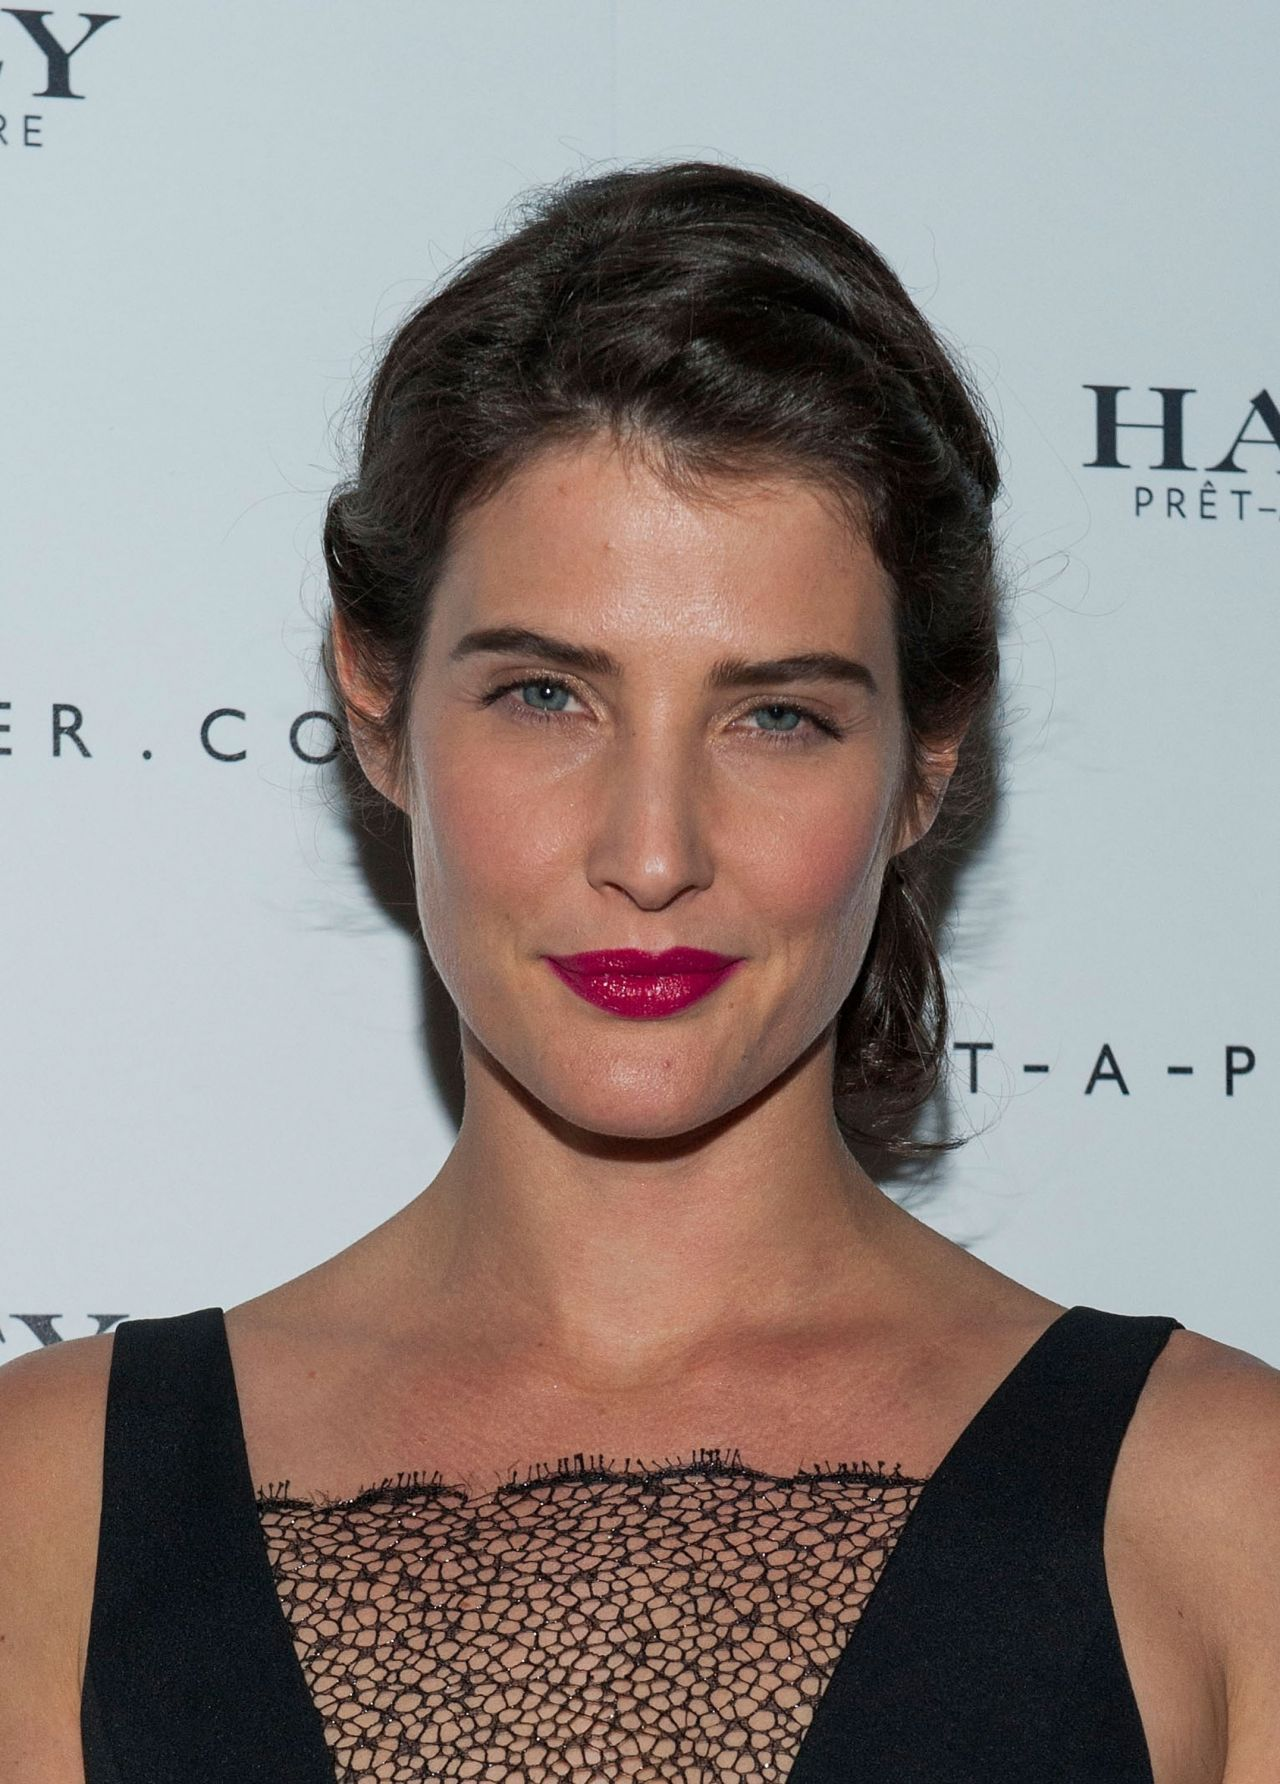 Cobie Smulders at Net-A-Porter Hosts Haney Pret-A-Couture Launch